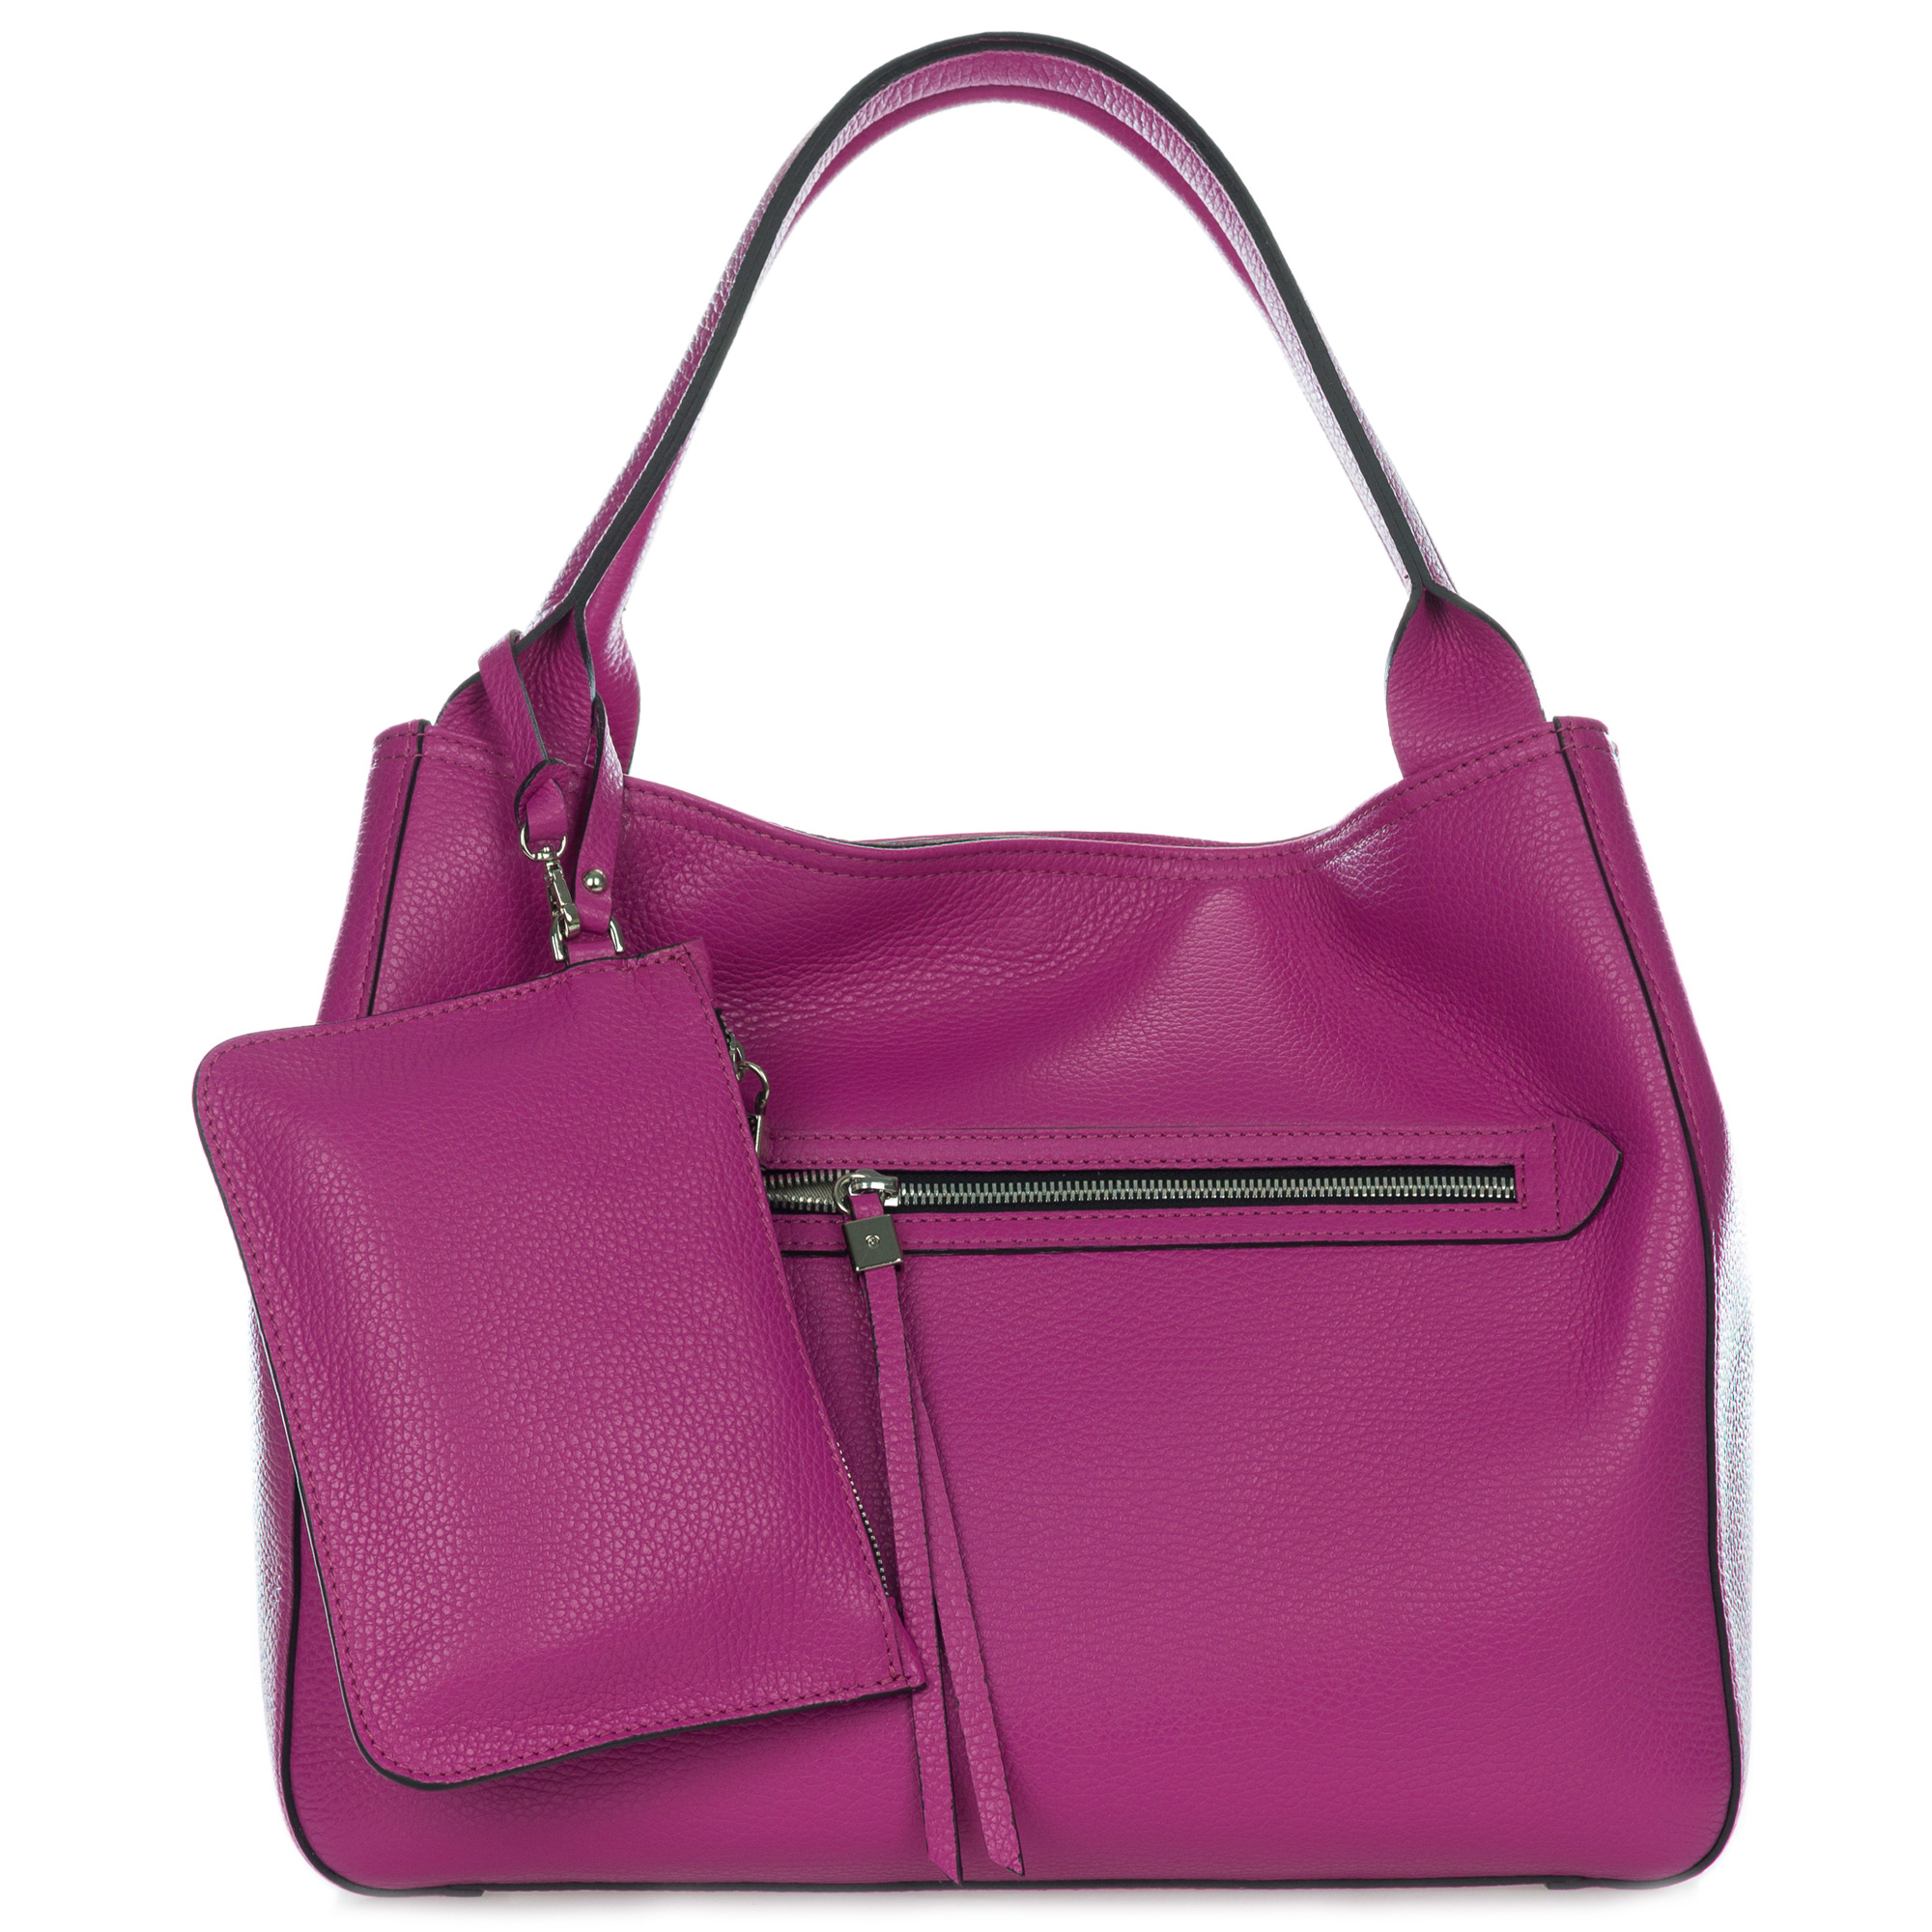 Gianni Chiarini Italian Made Magenta Pink Leather Large Zip Pocket Carryall Tote Handbag with Pouch